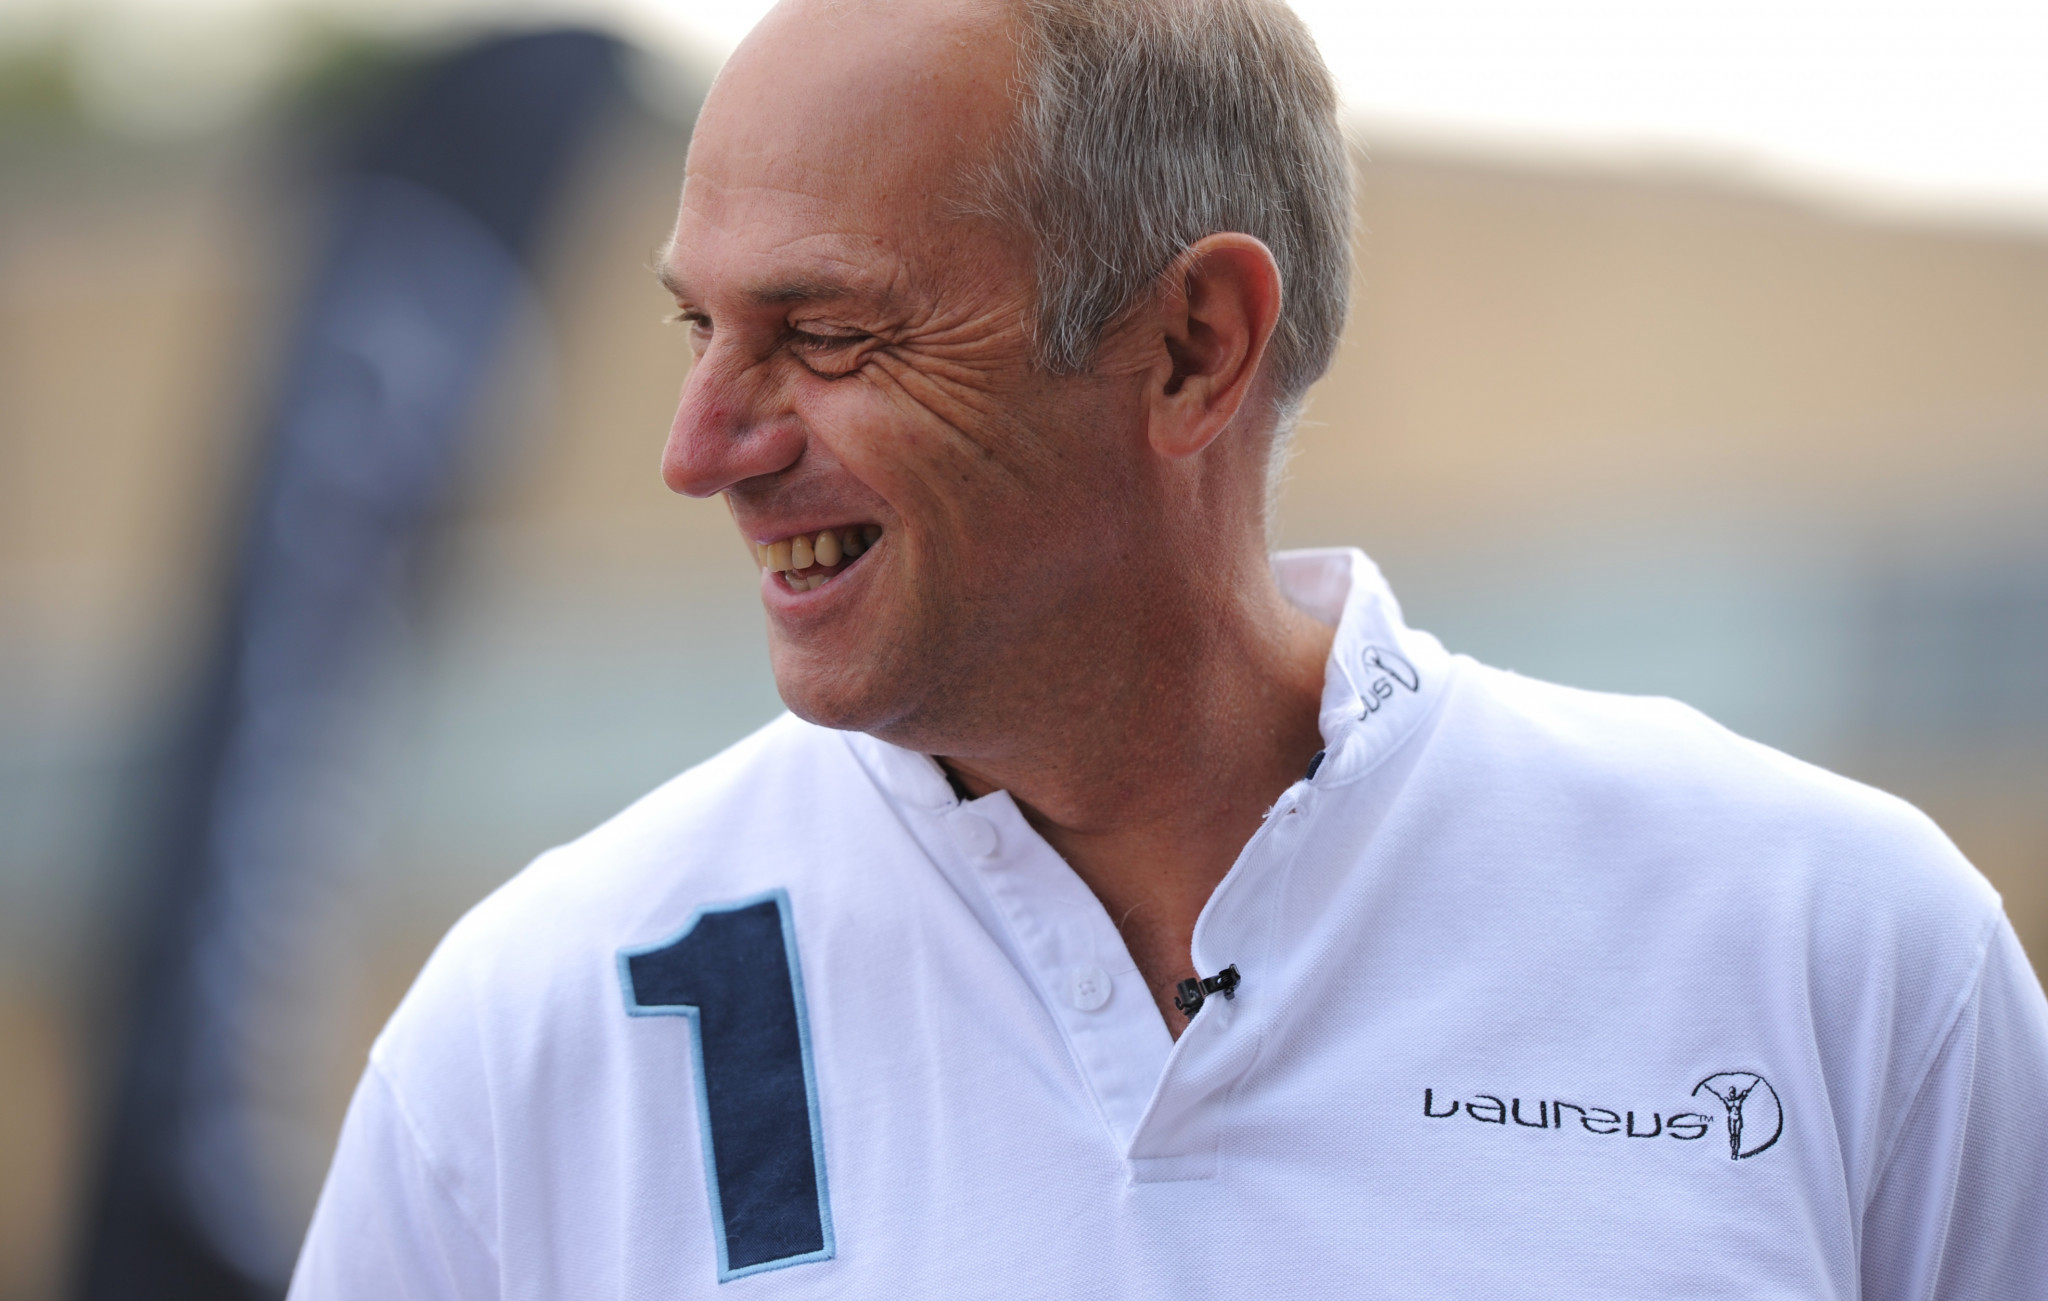 Sir Steve Redgrave appointed first high-performance director of China's national rowing team